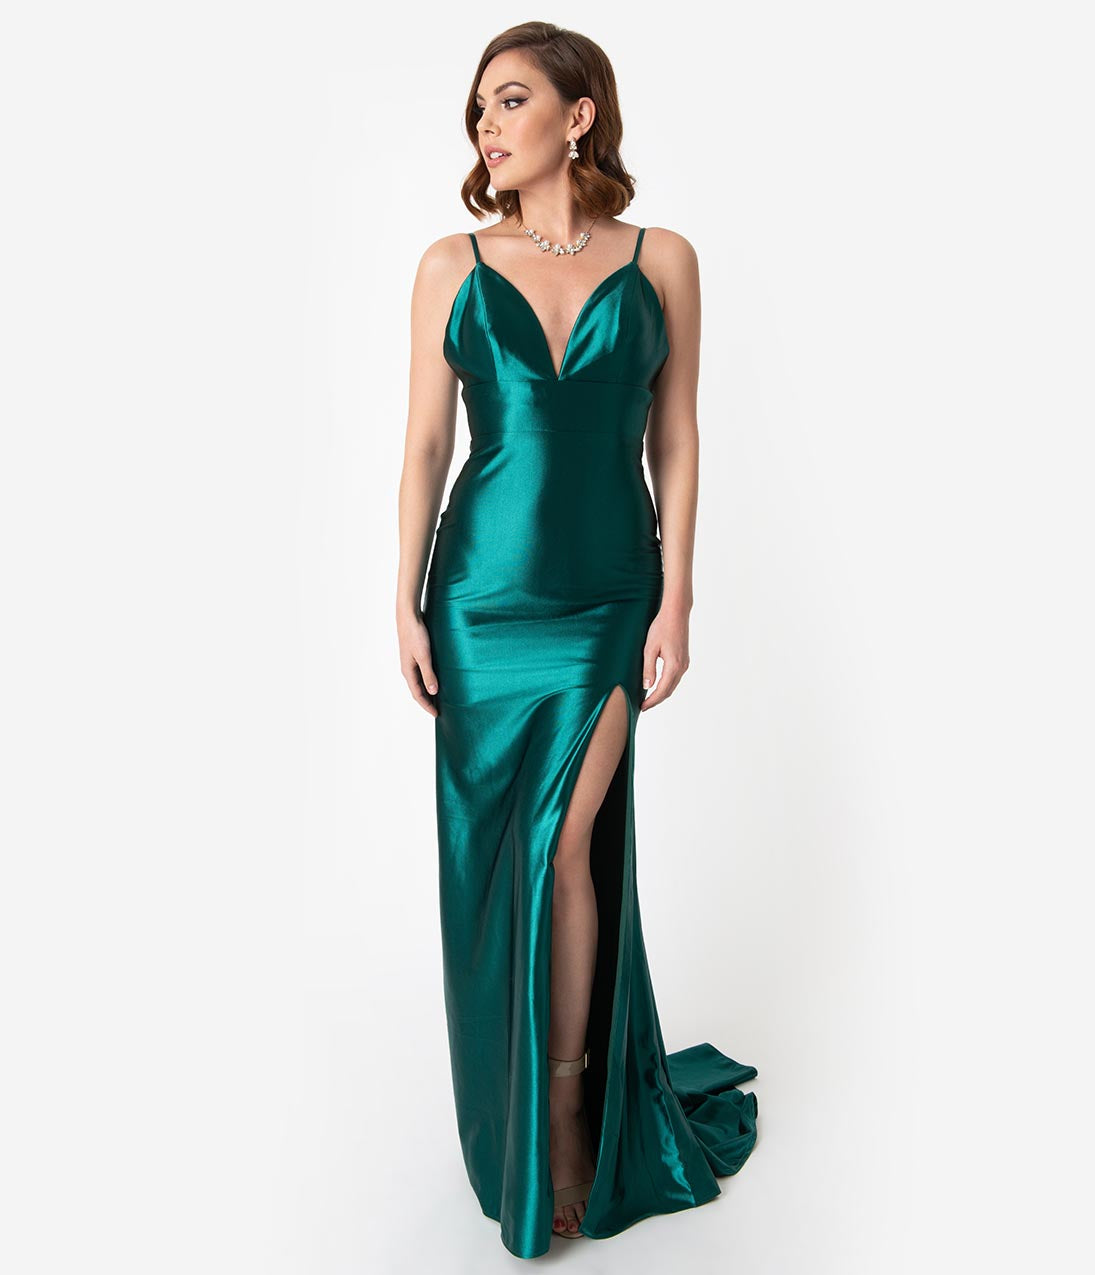 1930s Dresses | 30s Art Deco Dress Emerald Green Satin Fitted Sexy Sleeveless Long Dress $174.00 AT vintagedancer.com